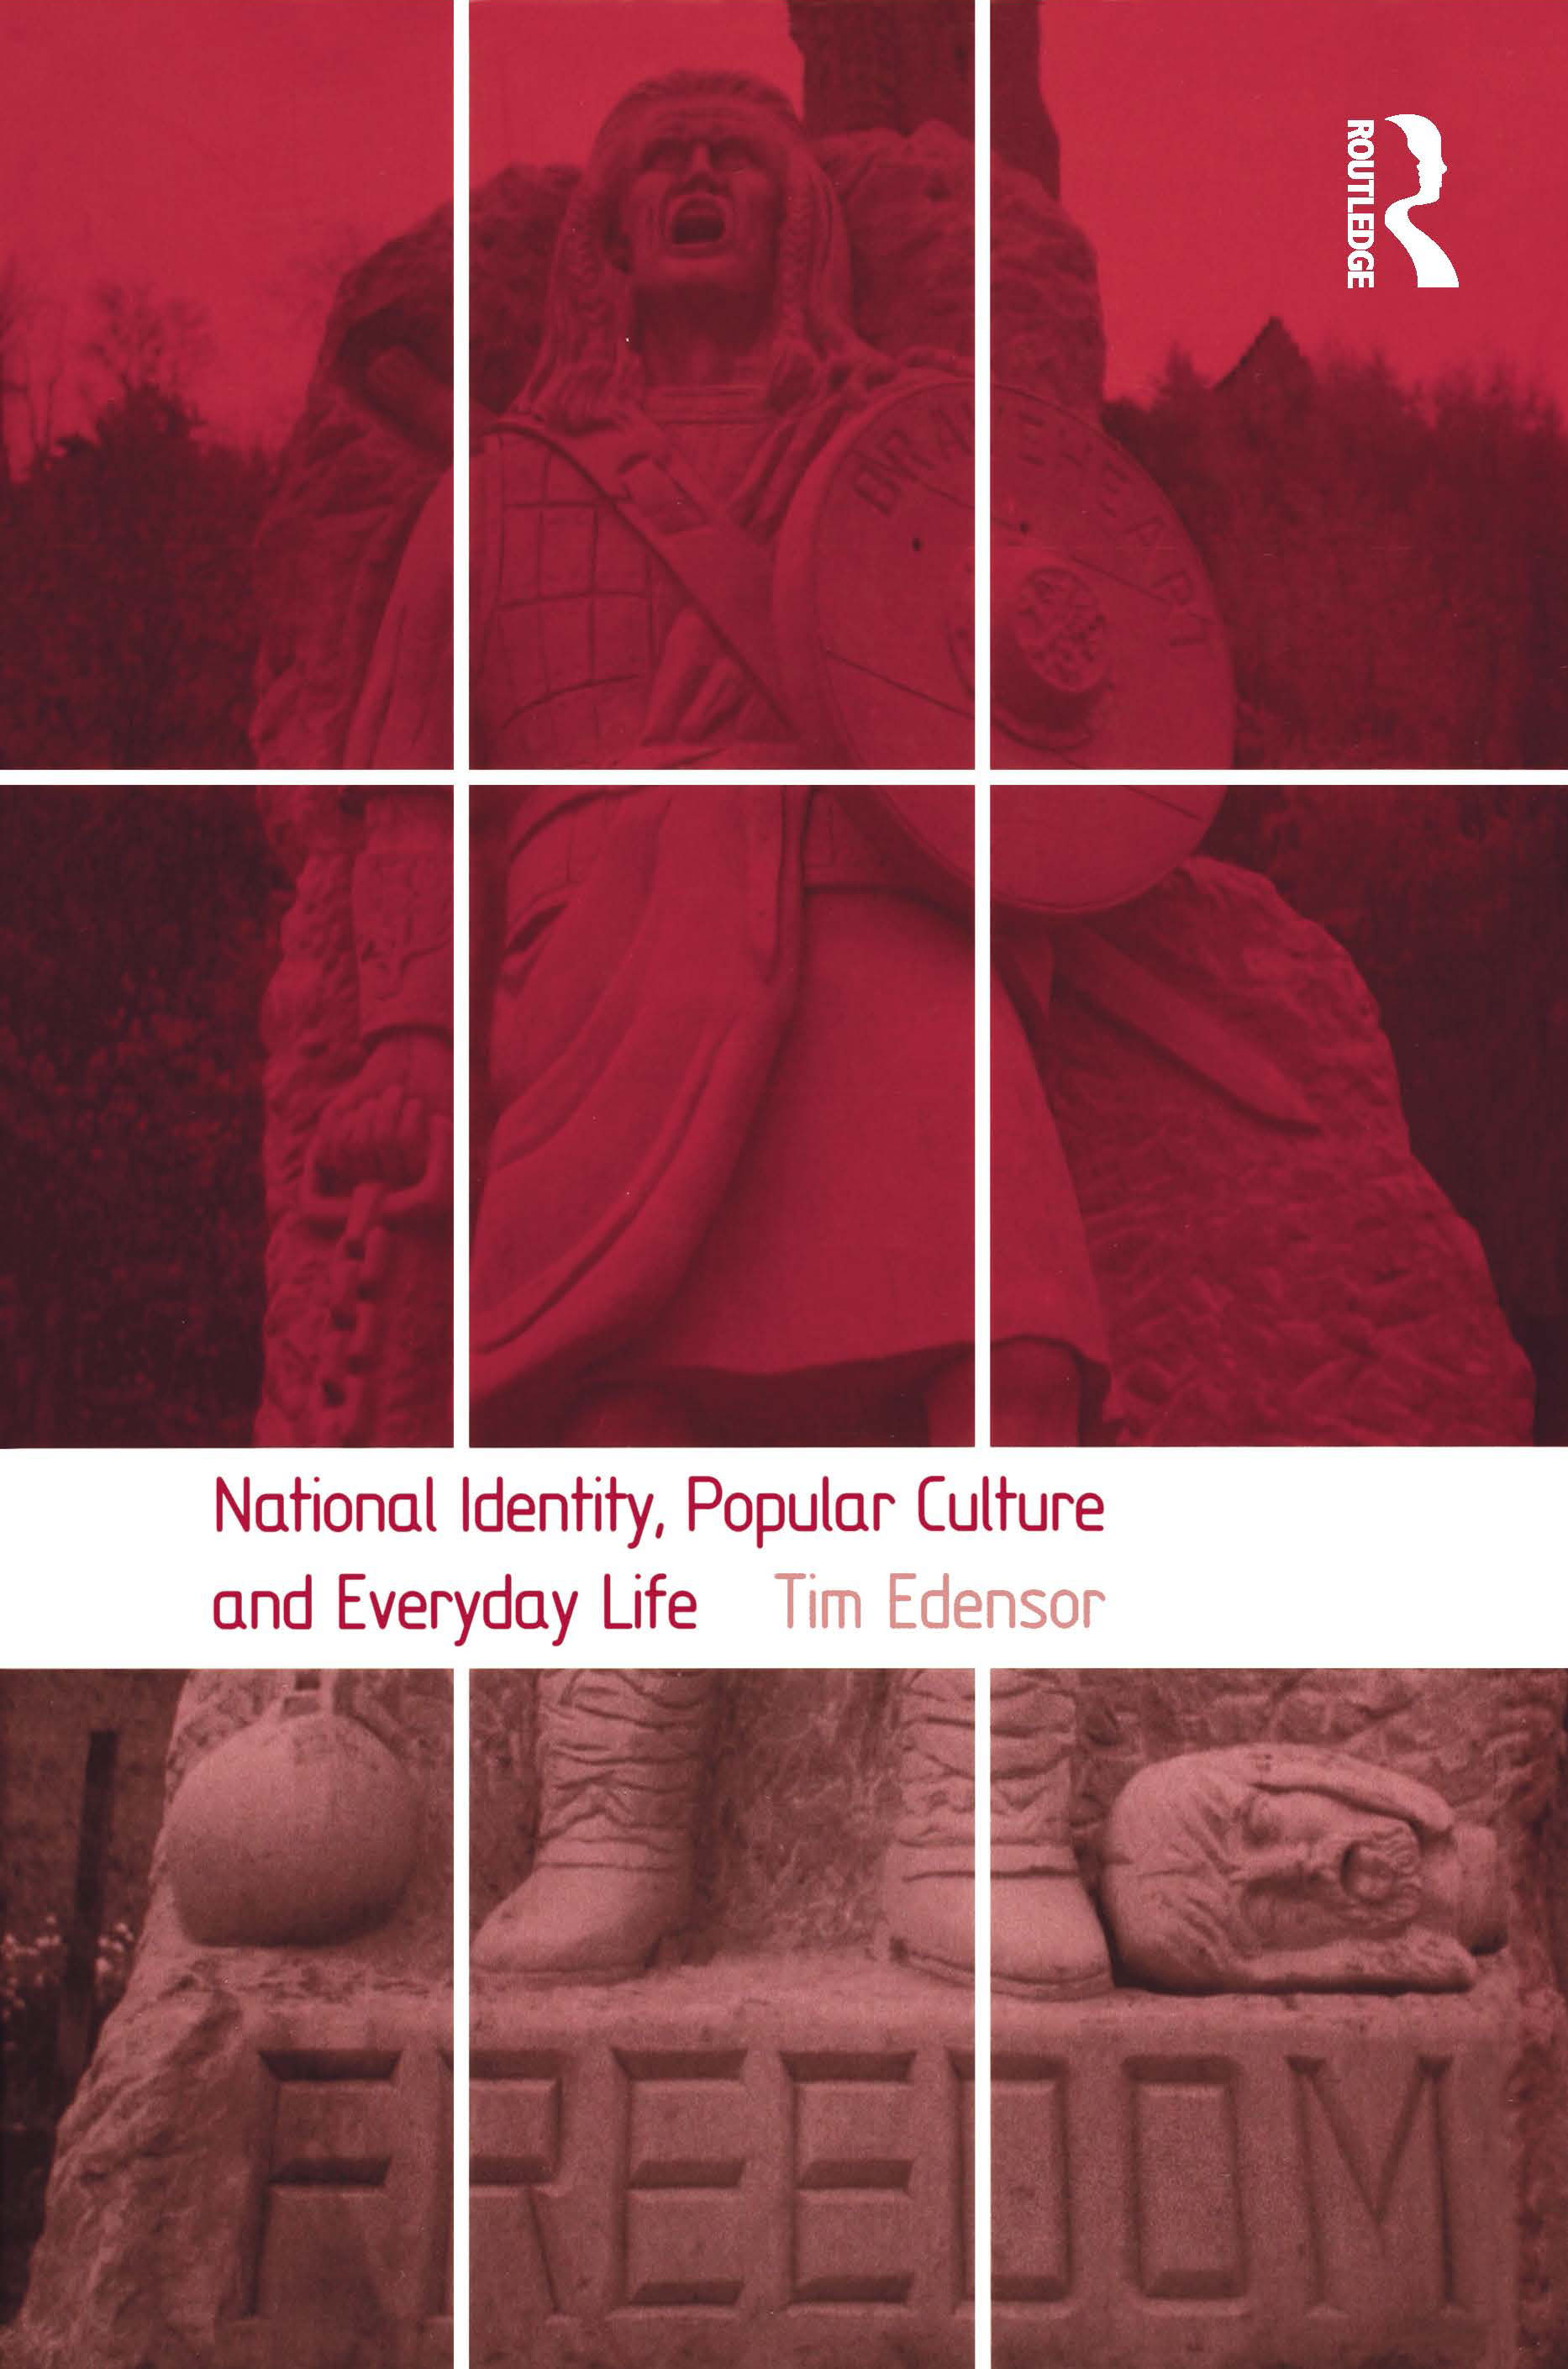 National Identity, Popular Culture and Everyday Life